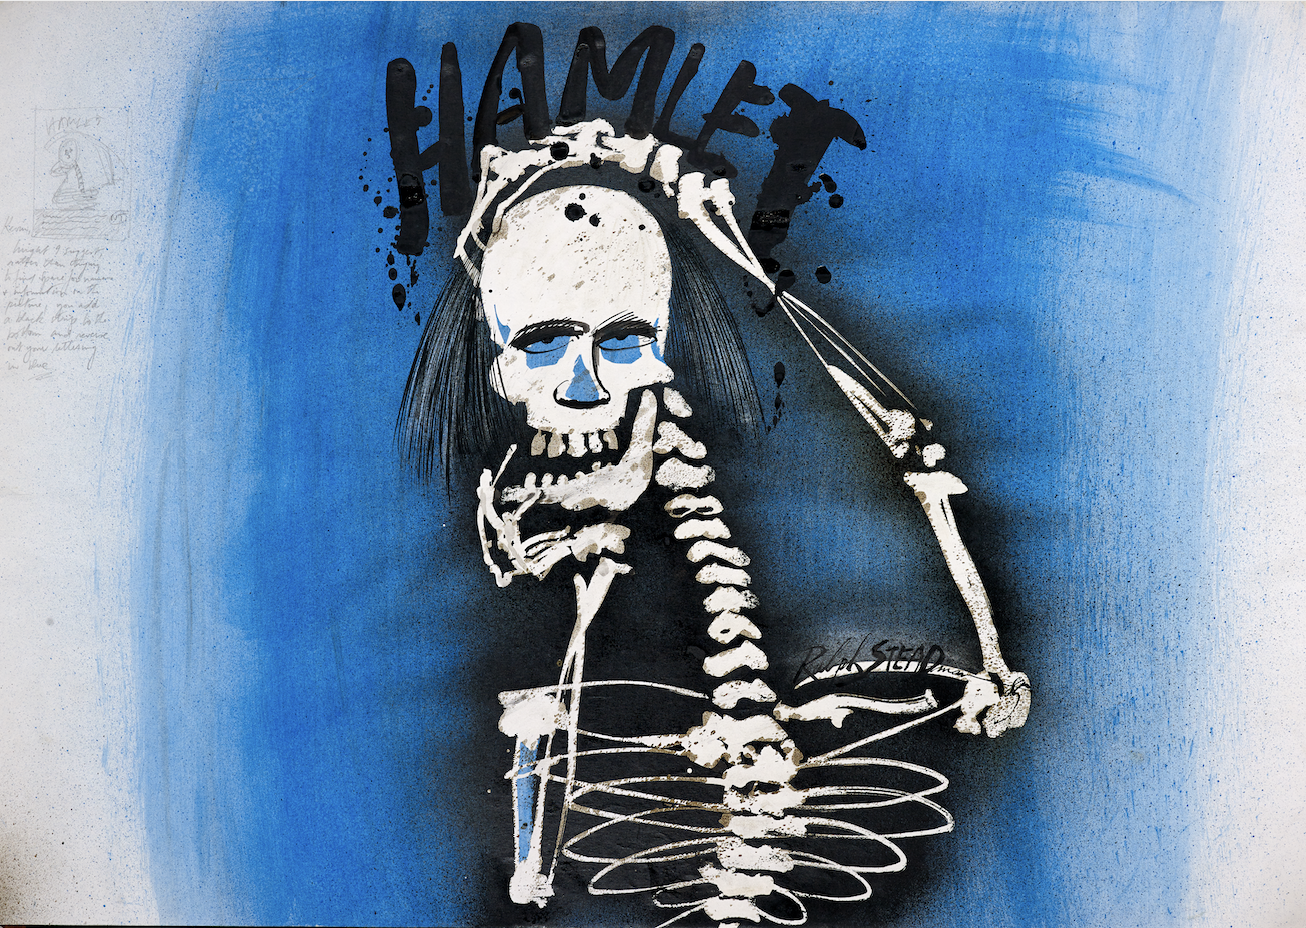 Hamlet Poster Artwork by Ralph Steadman